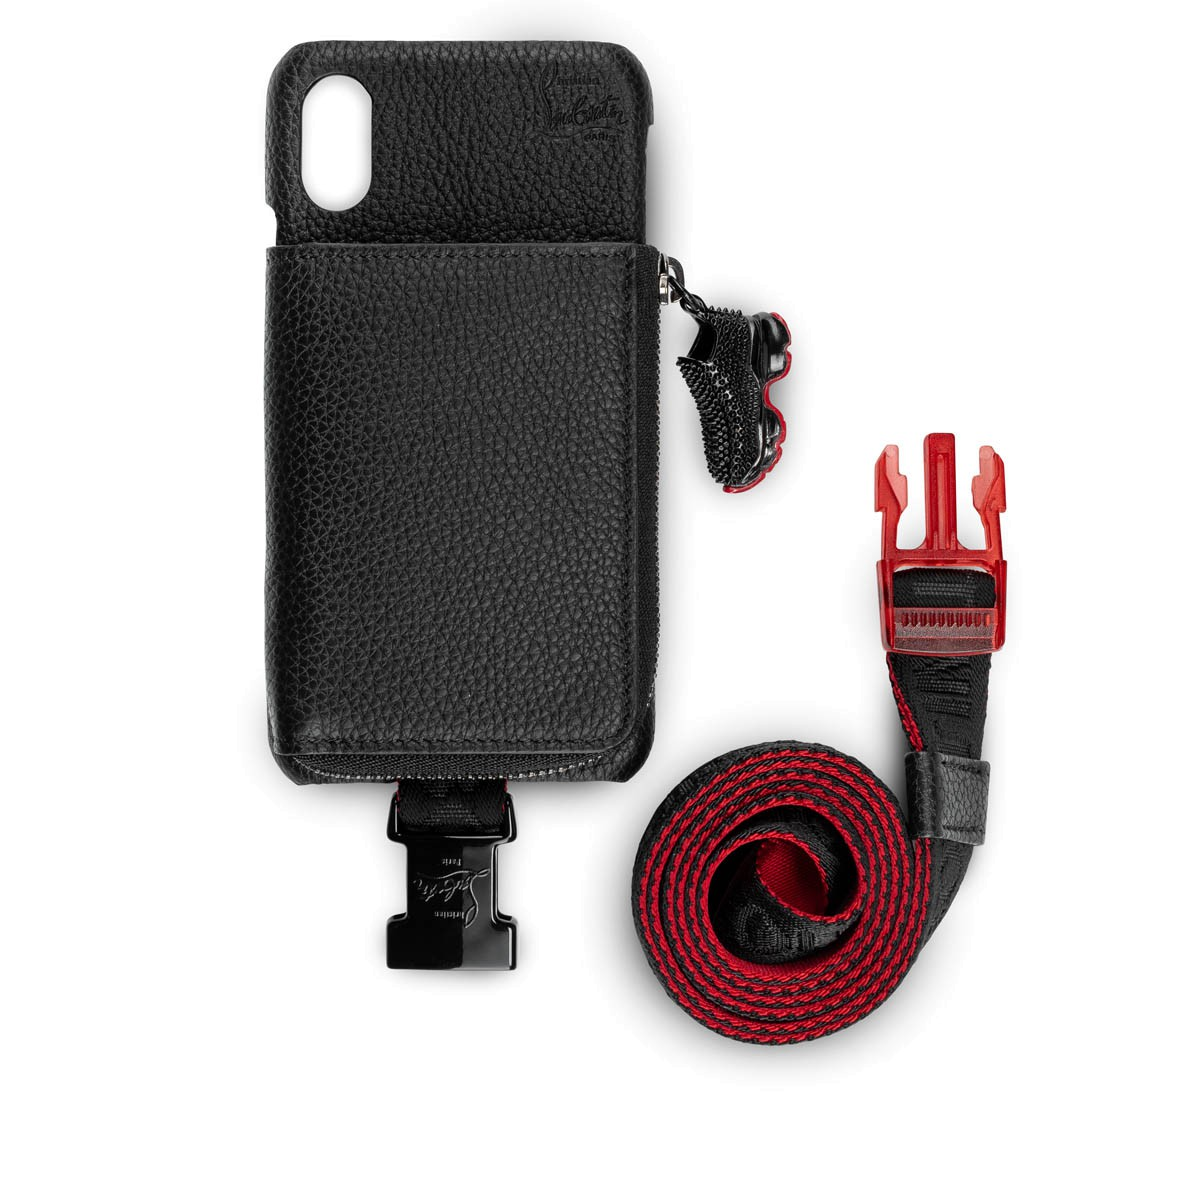 Small Leather Goods - Loubicharm Iphone Case - Christian Louboutin